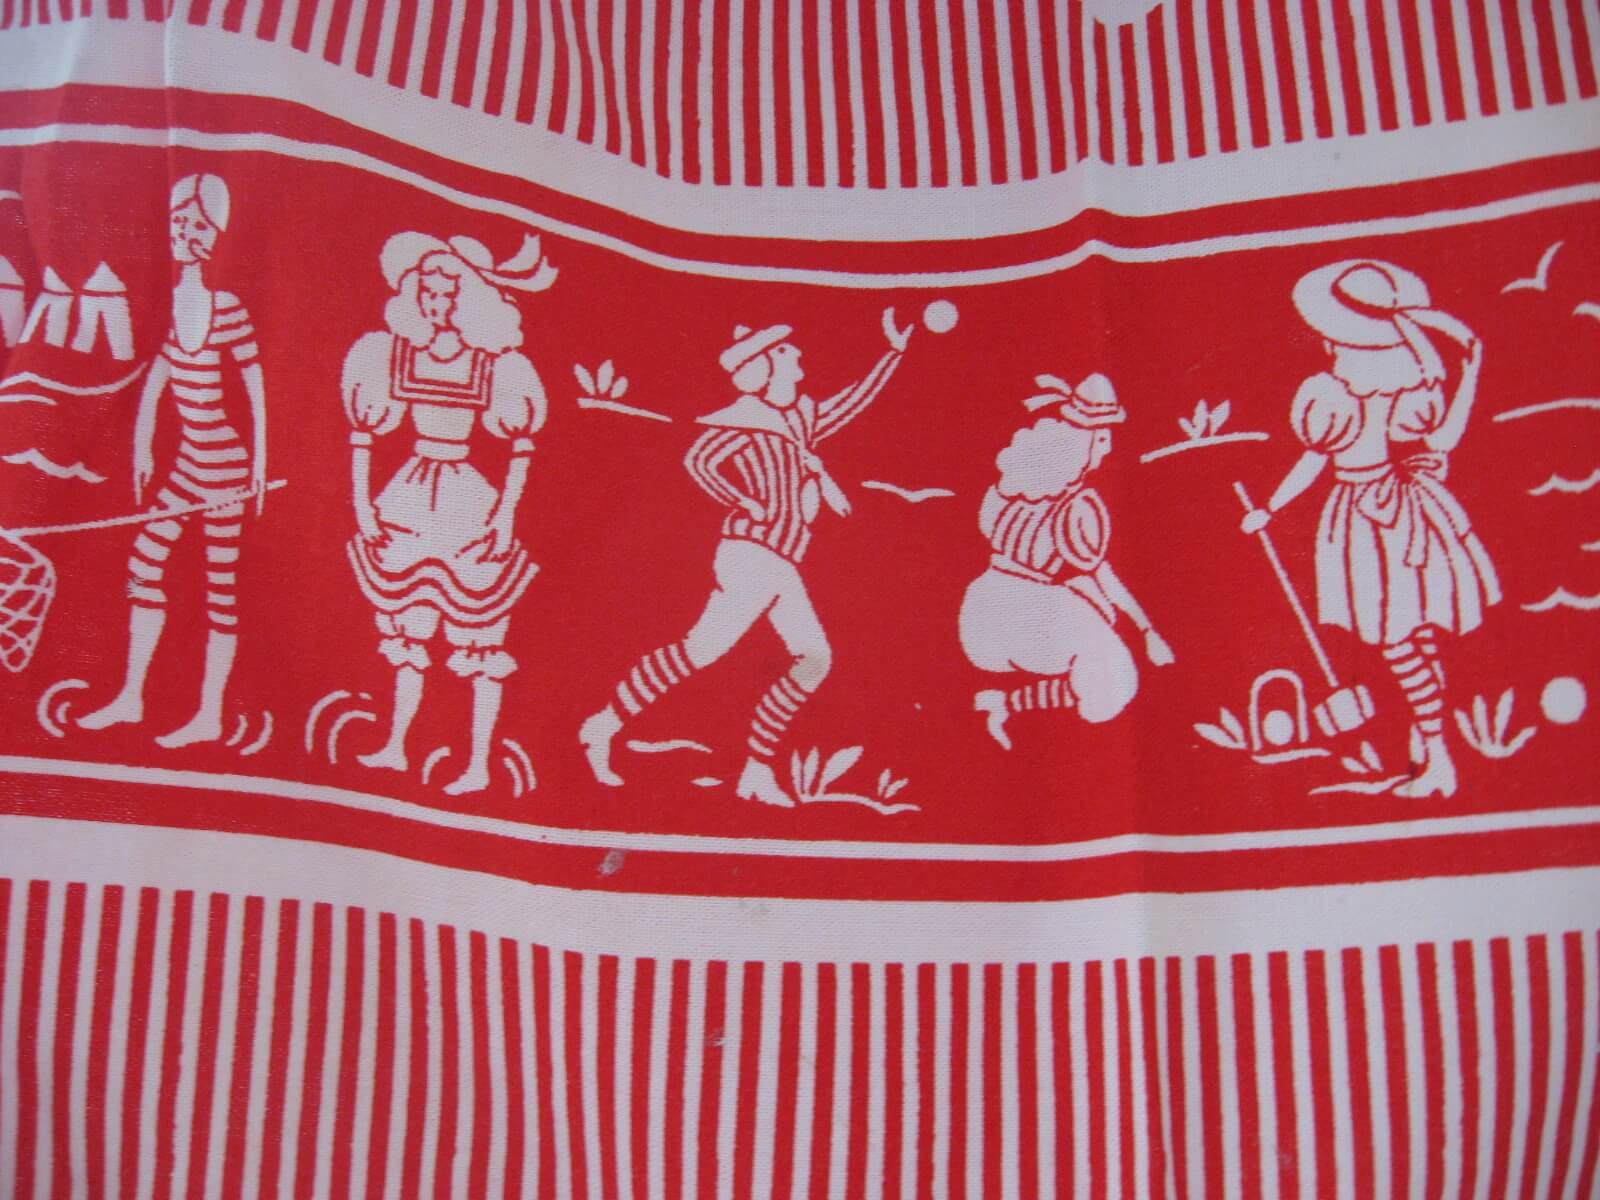 seaside country bygone pursuits red vintage apron at PumpjackPiddkewick